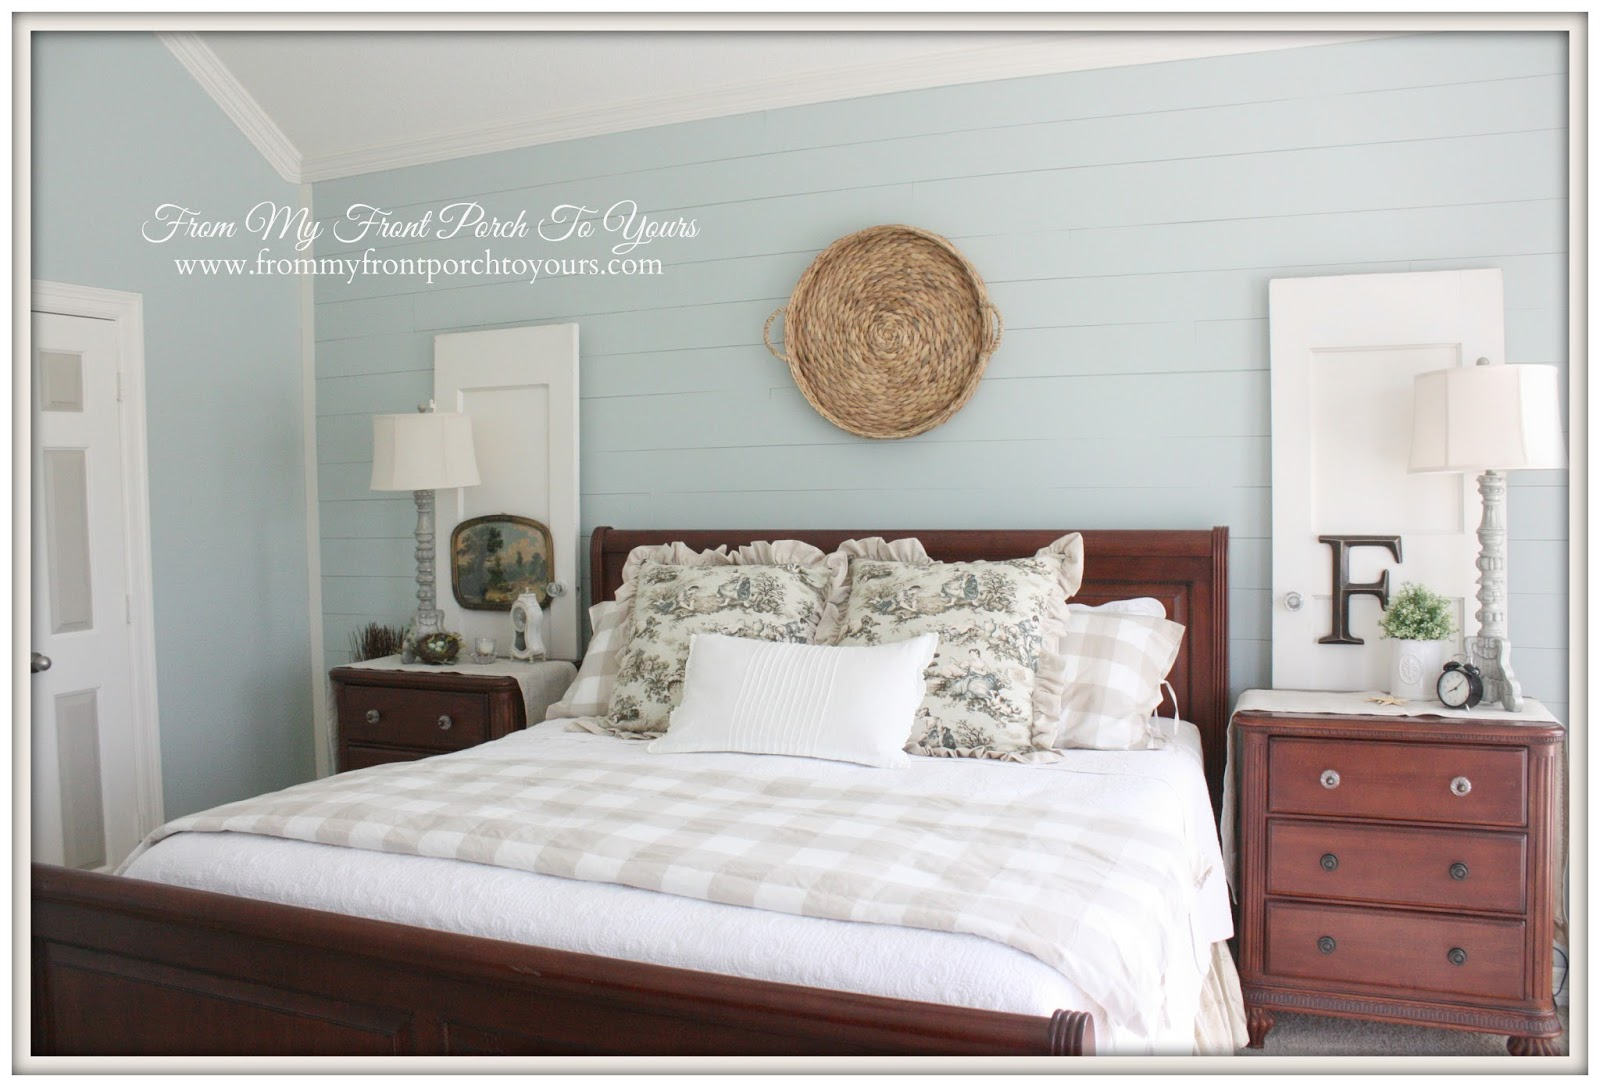 From My Front Porch To Yours- French Farmhouse Bedroom Target Basket